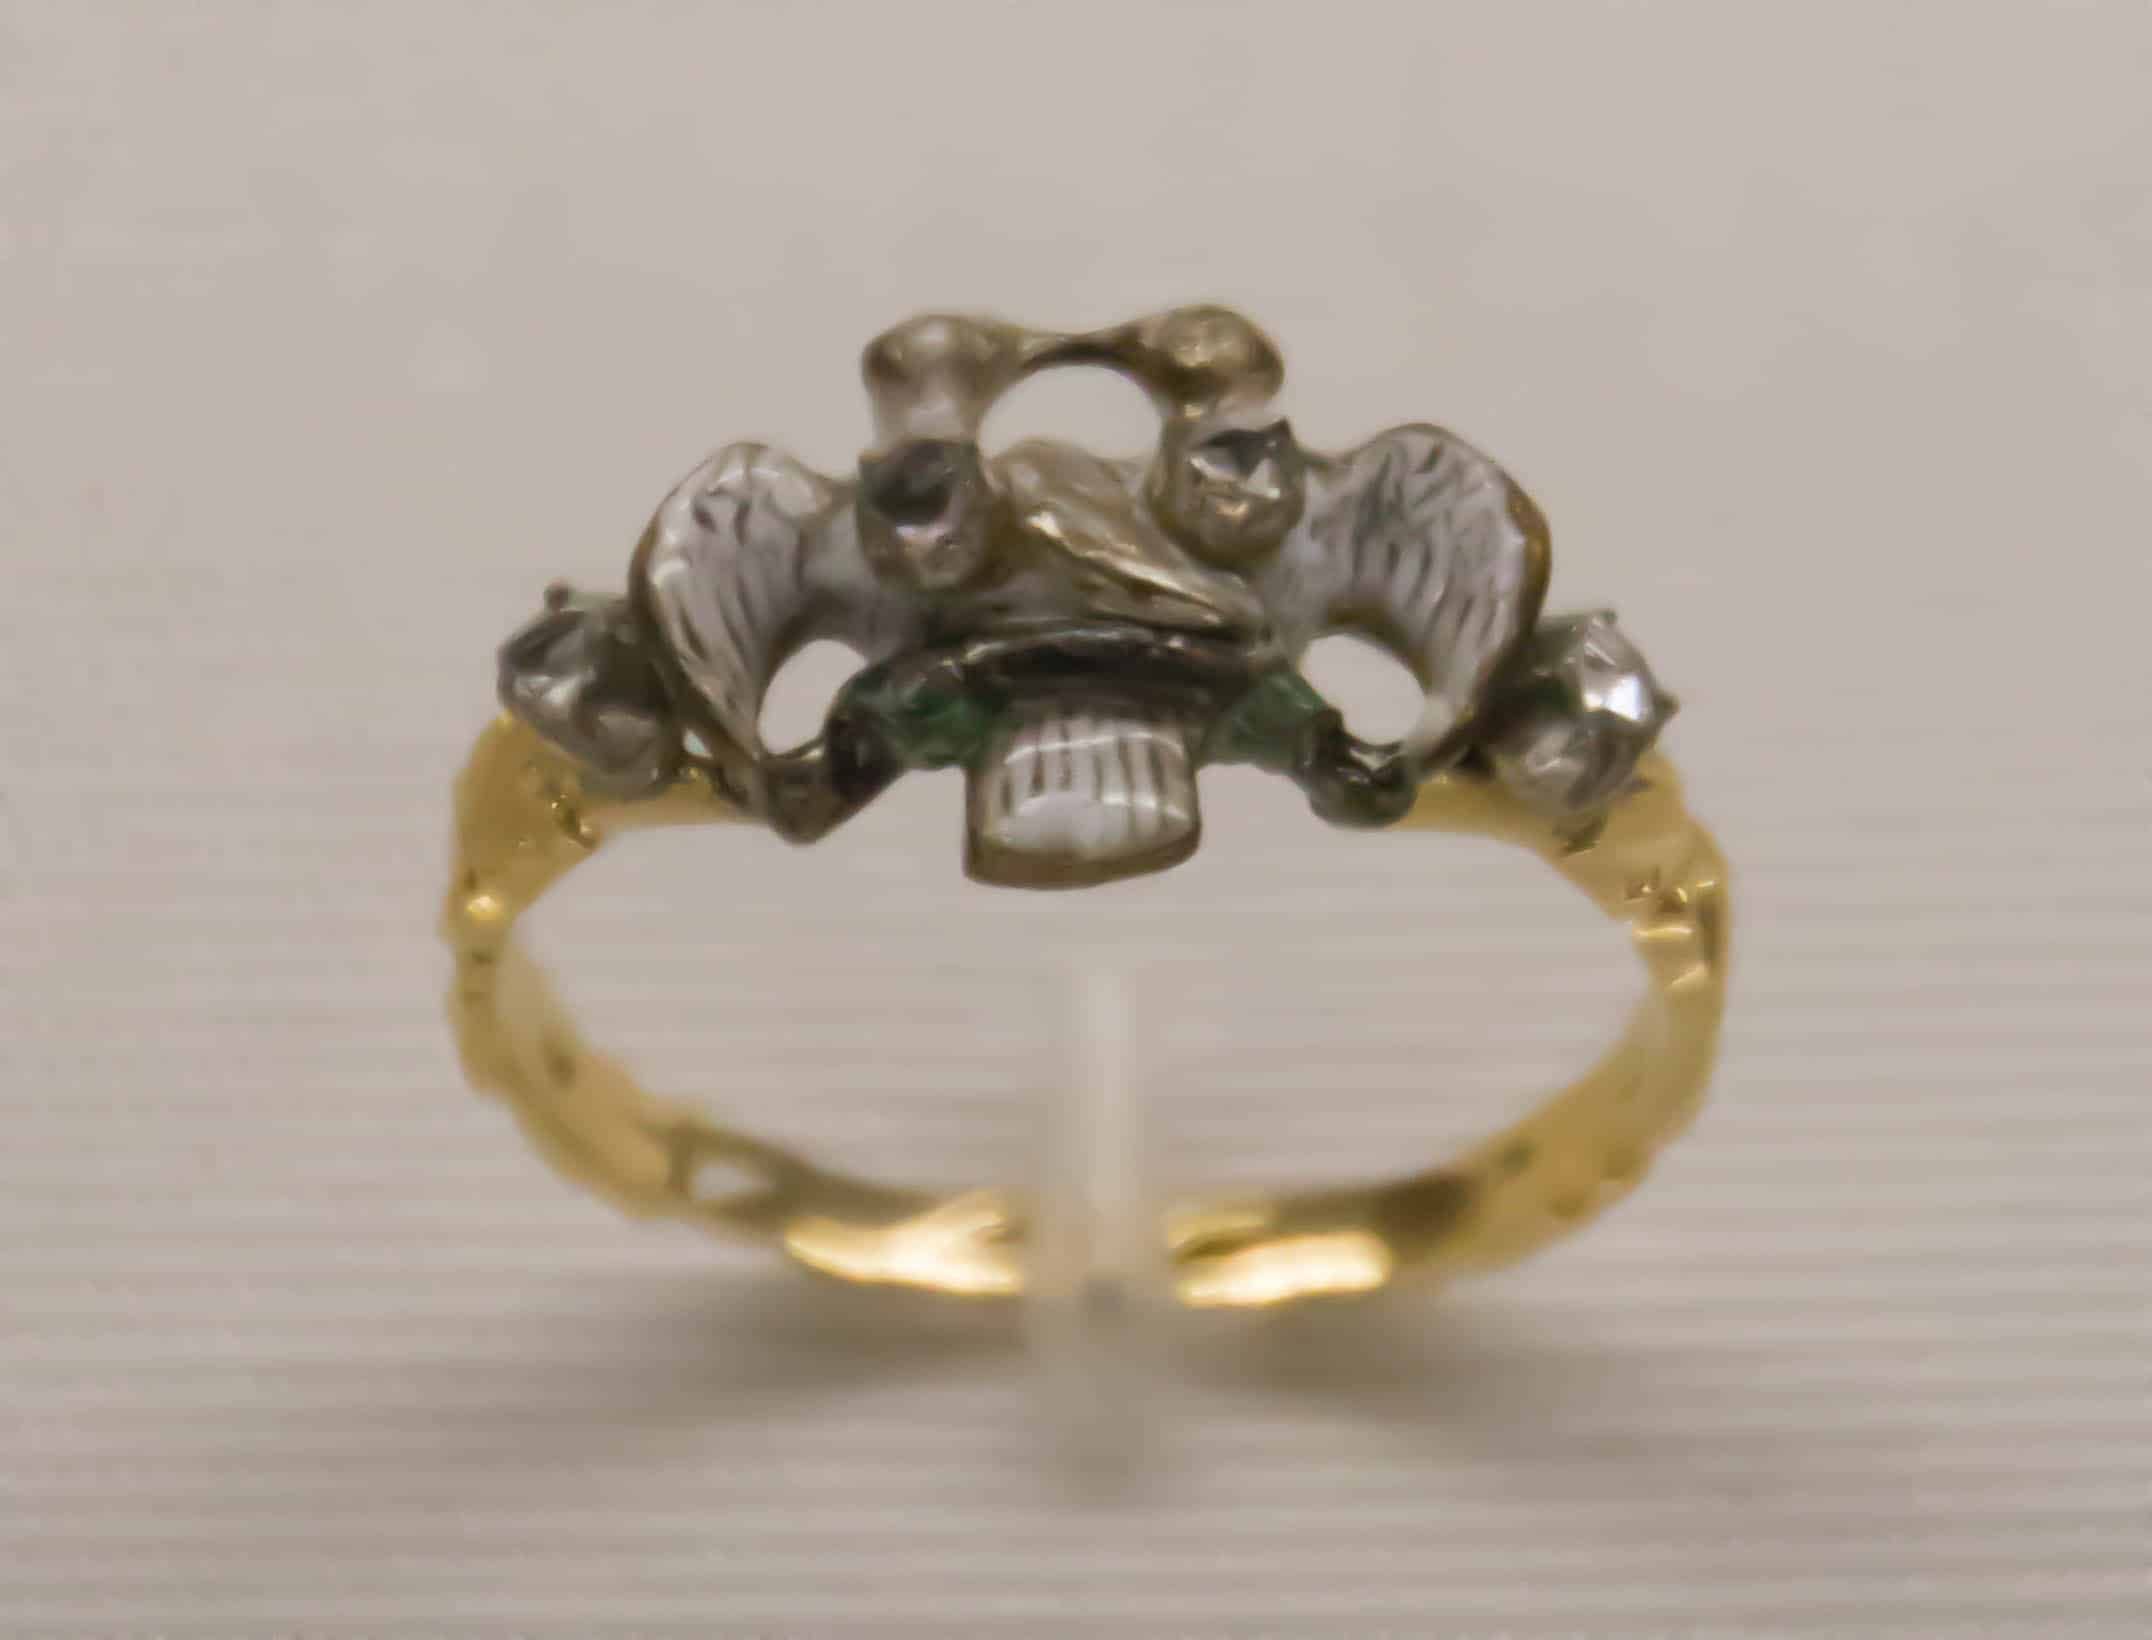 French Love Ring Mid 18th Cen.jpg